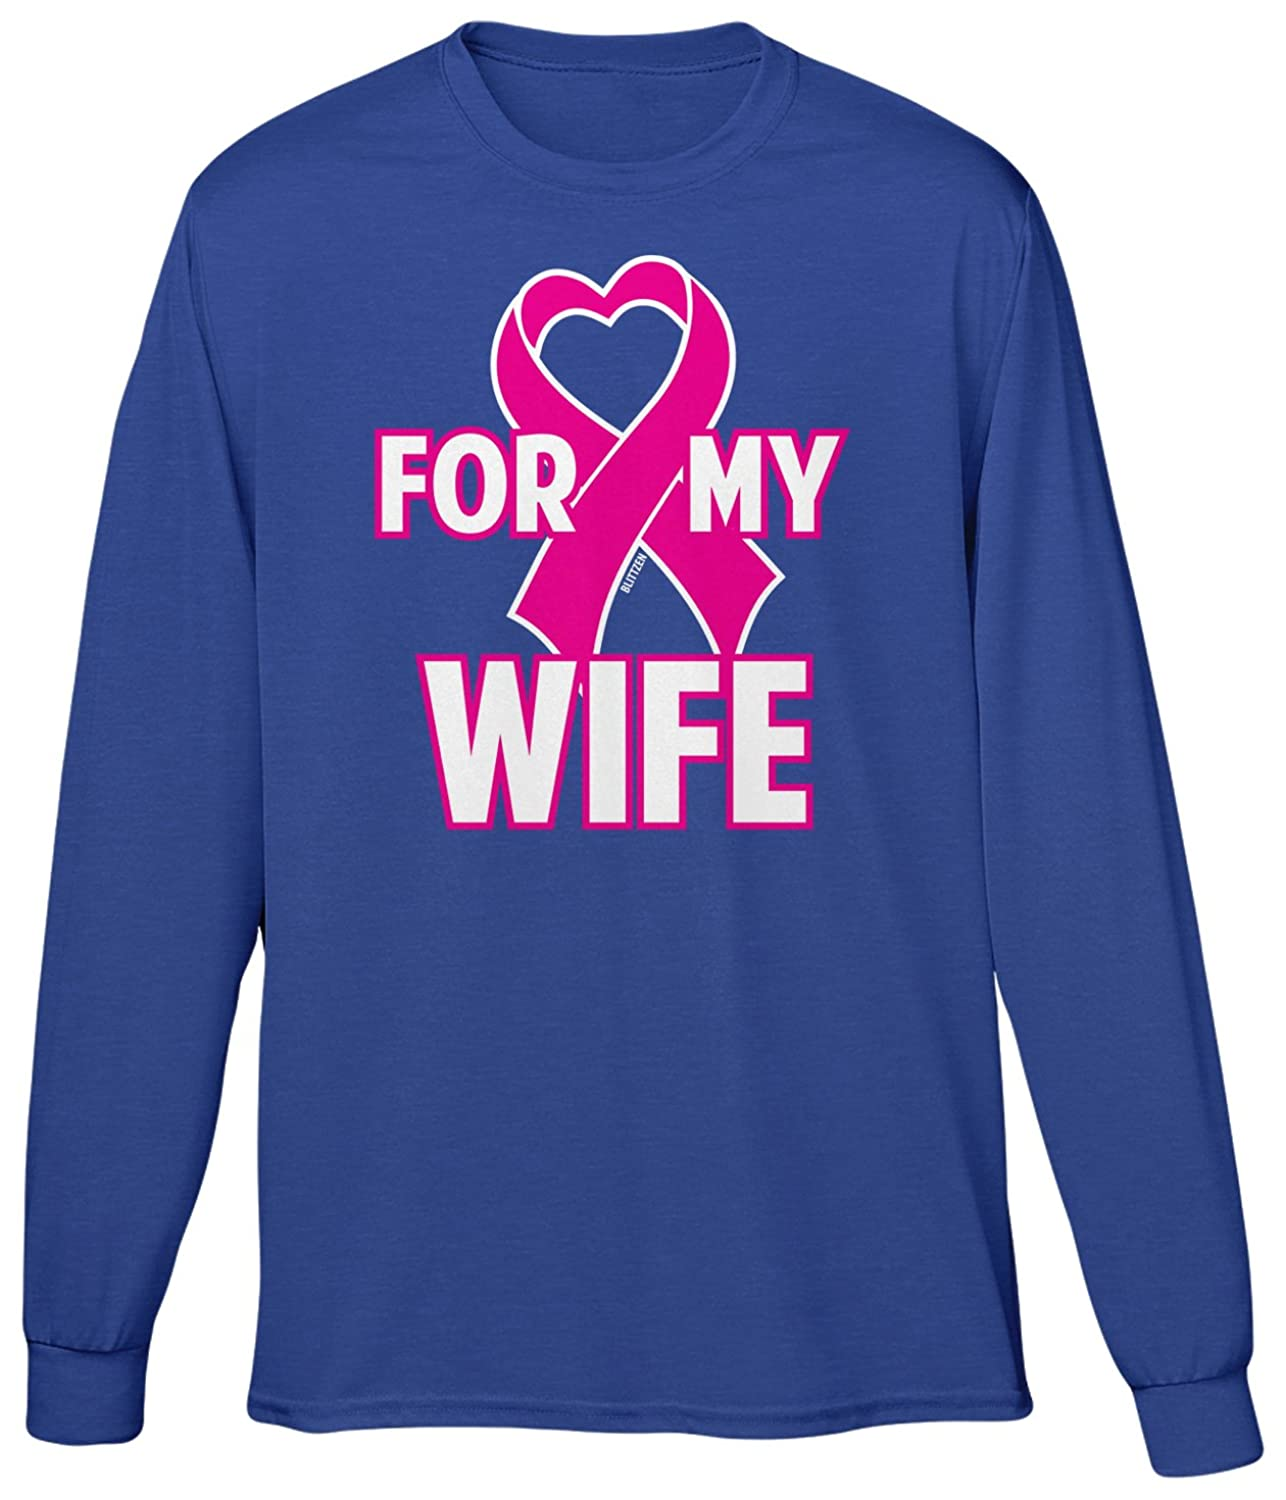 Blittzen Mens Long Sleeve T-shirt For My Wife Heart Pink Ribbon